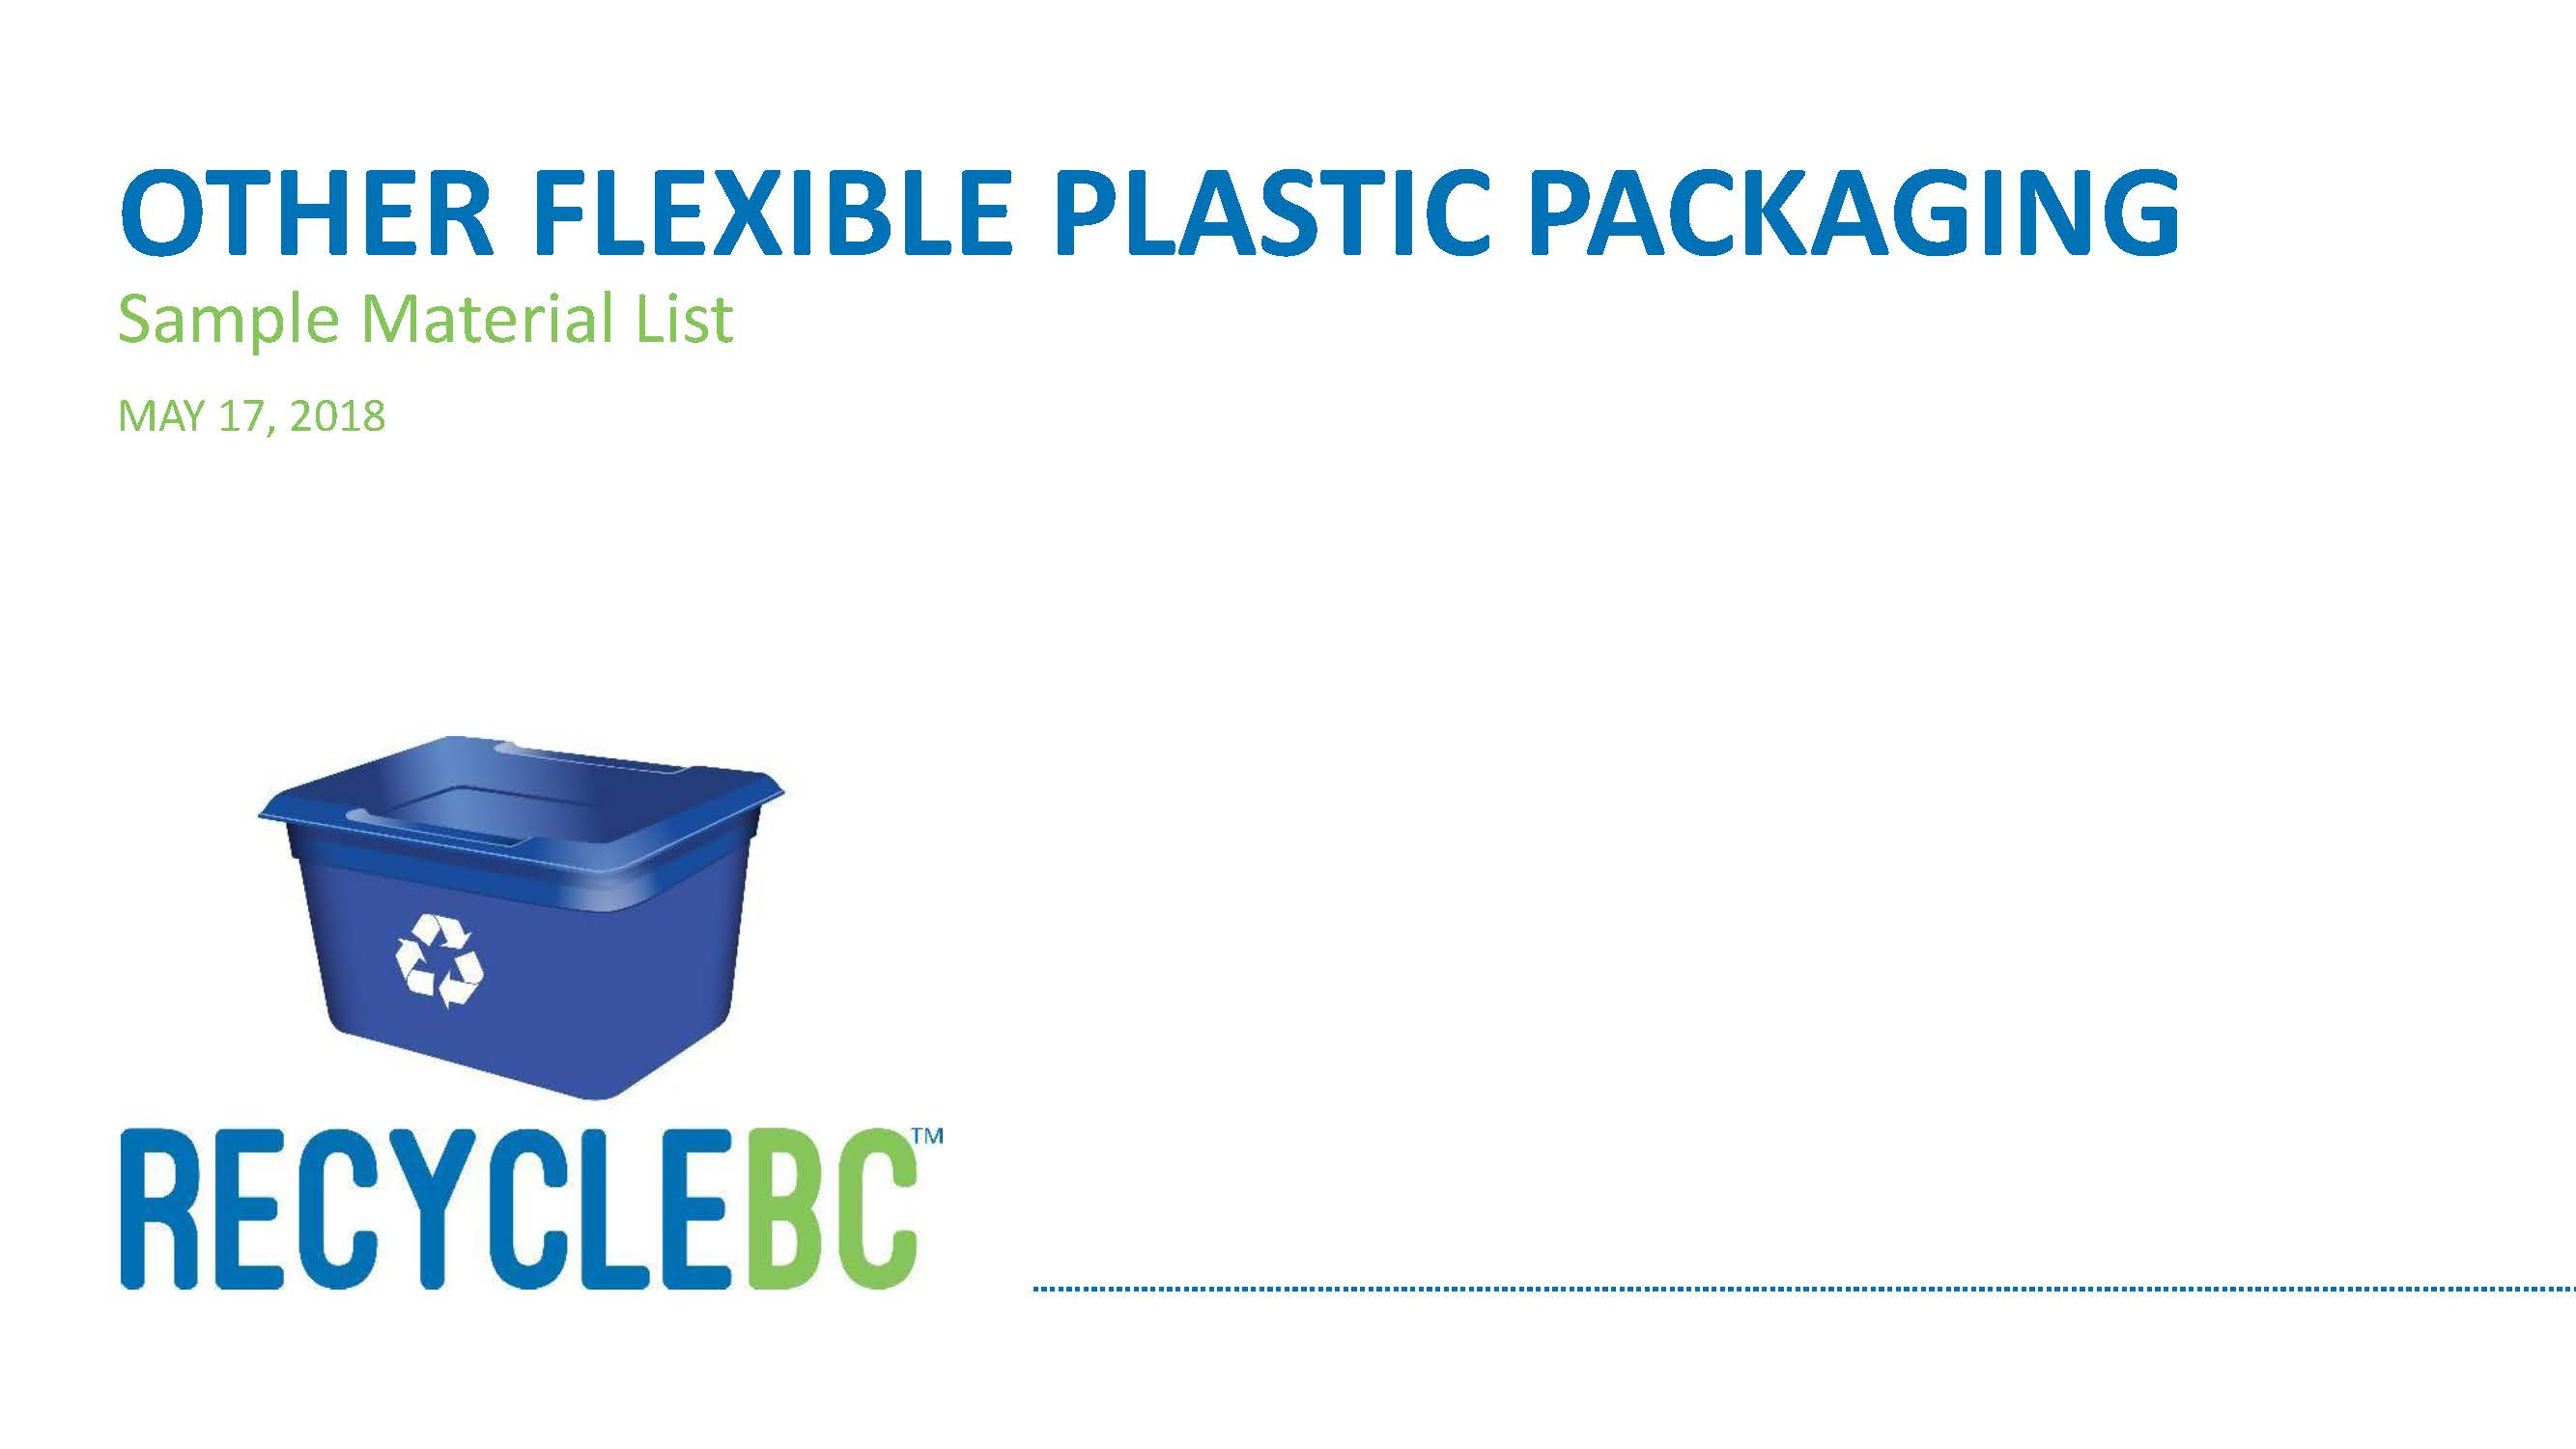 Material List_Other Flexible Plastic Packaging_Page_01